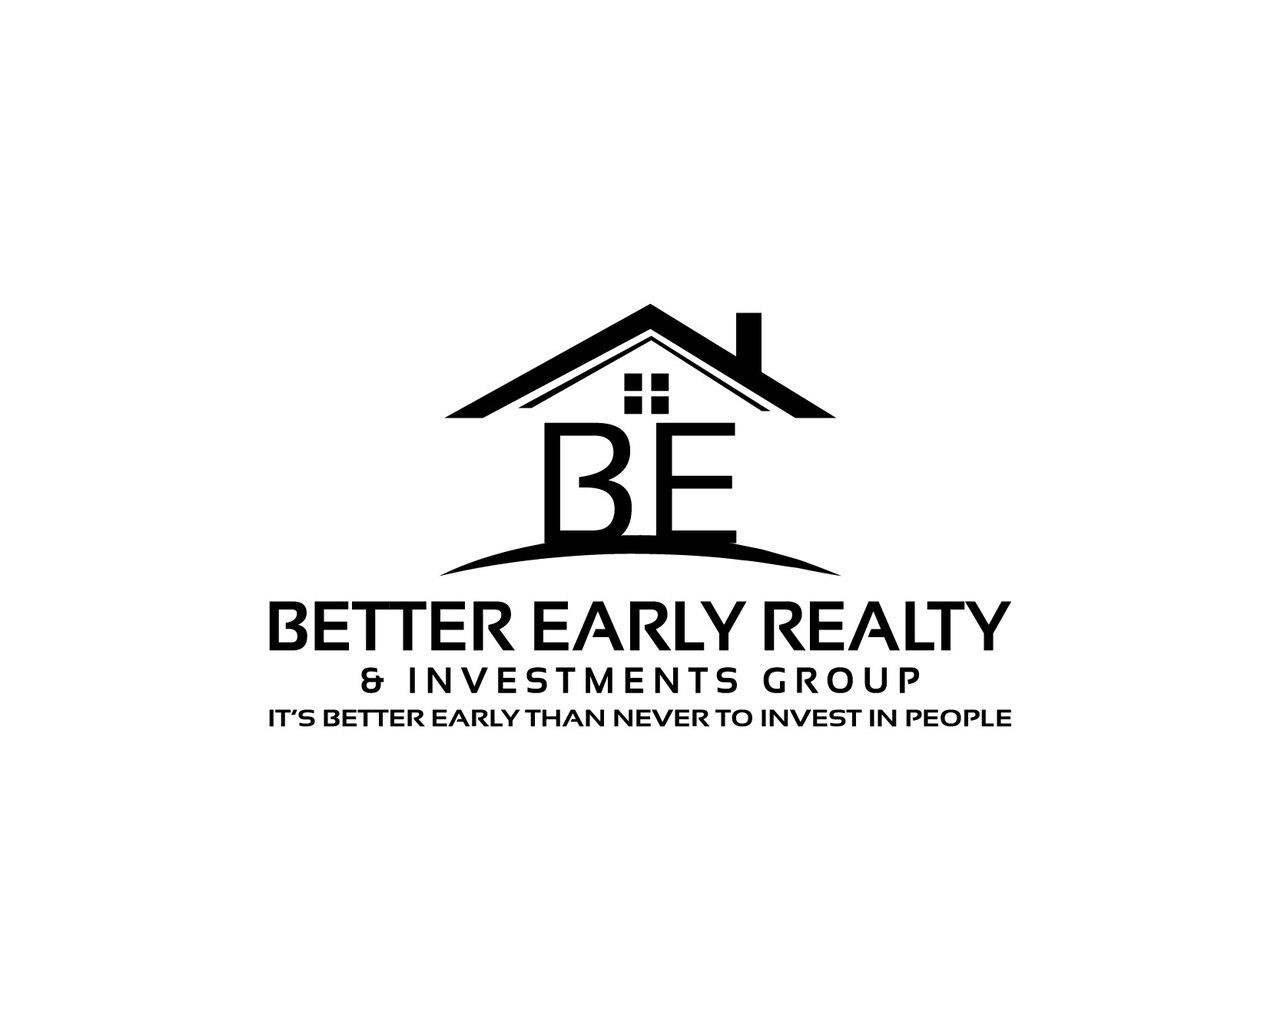 Better Early Realty & Investments